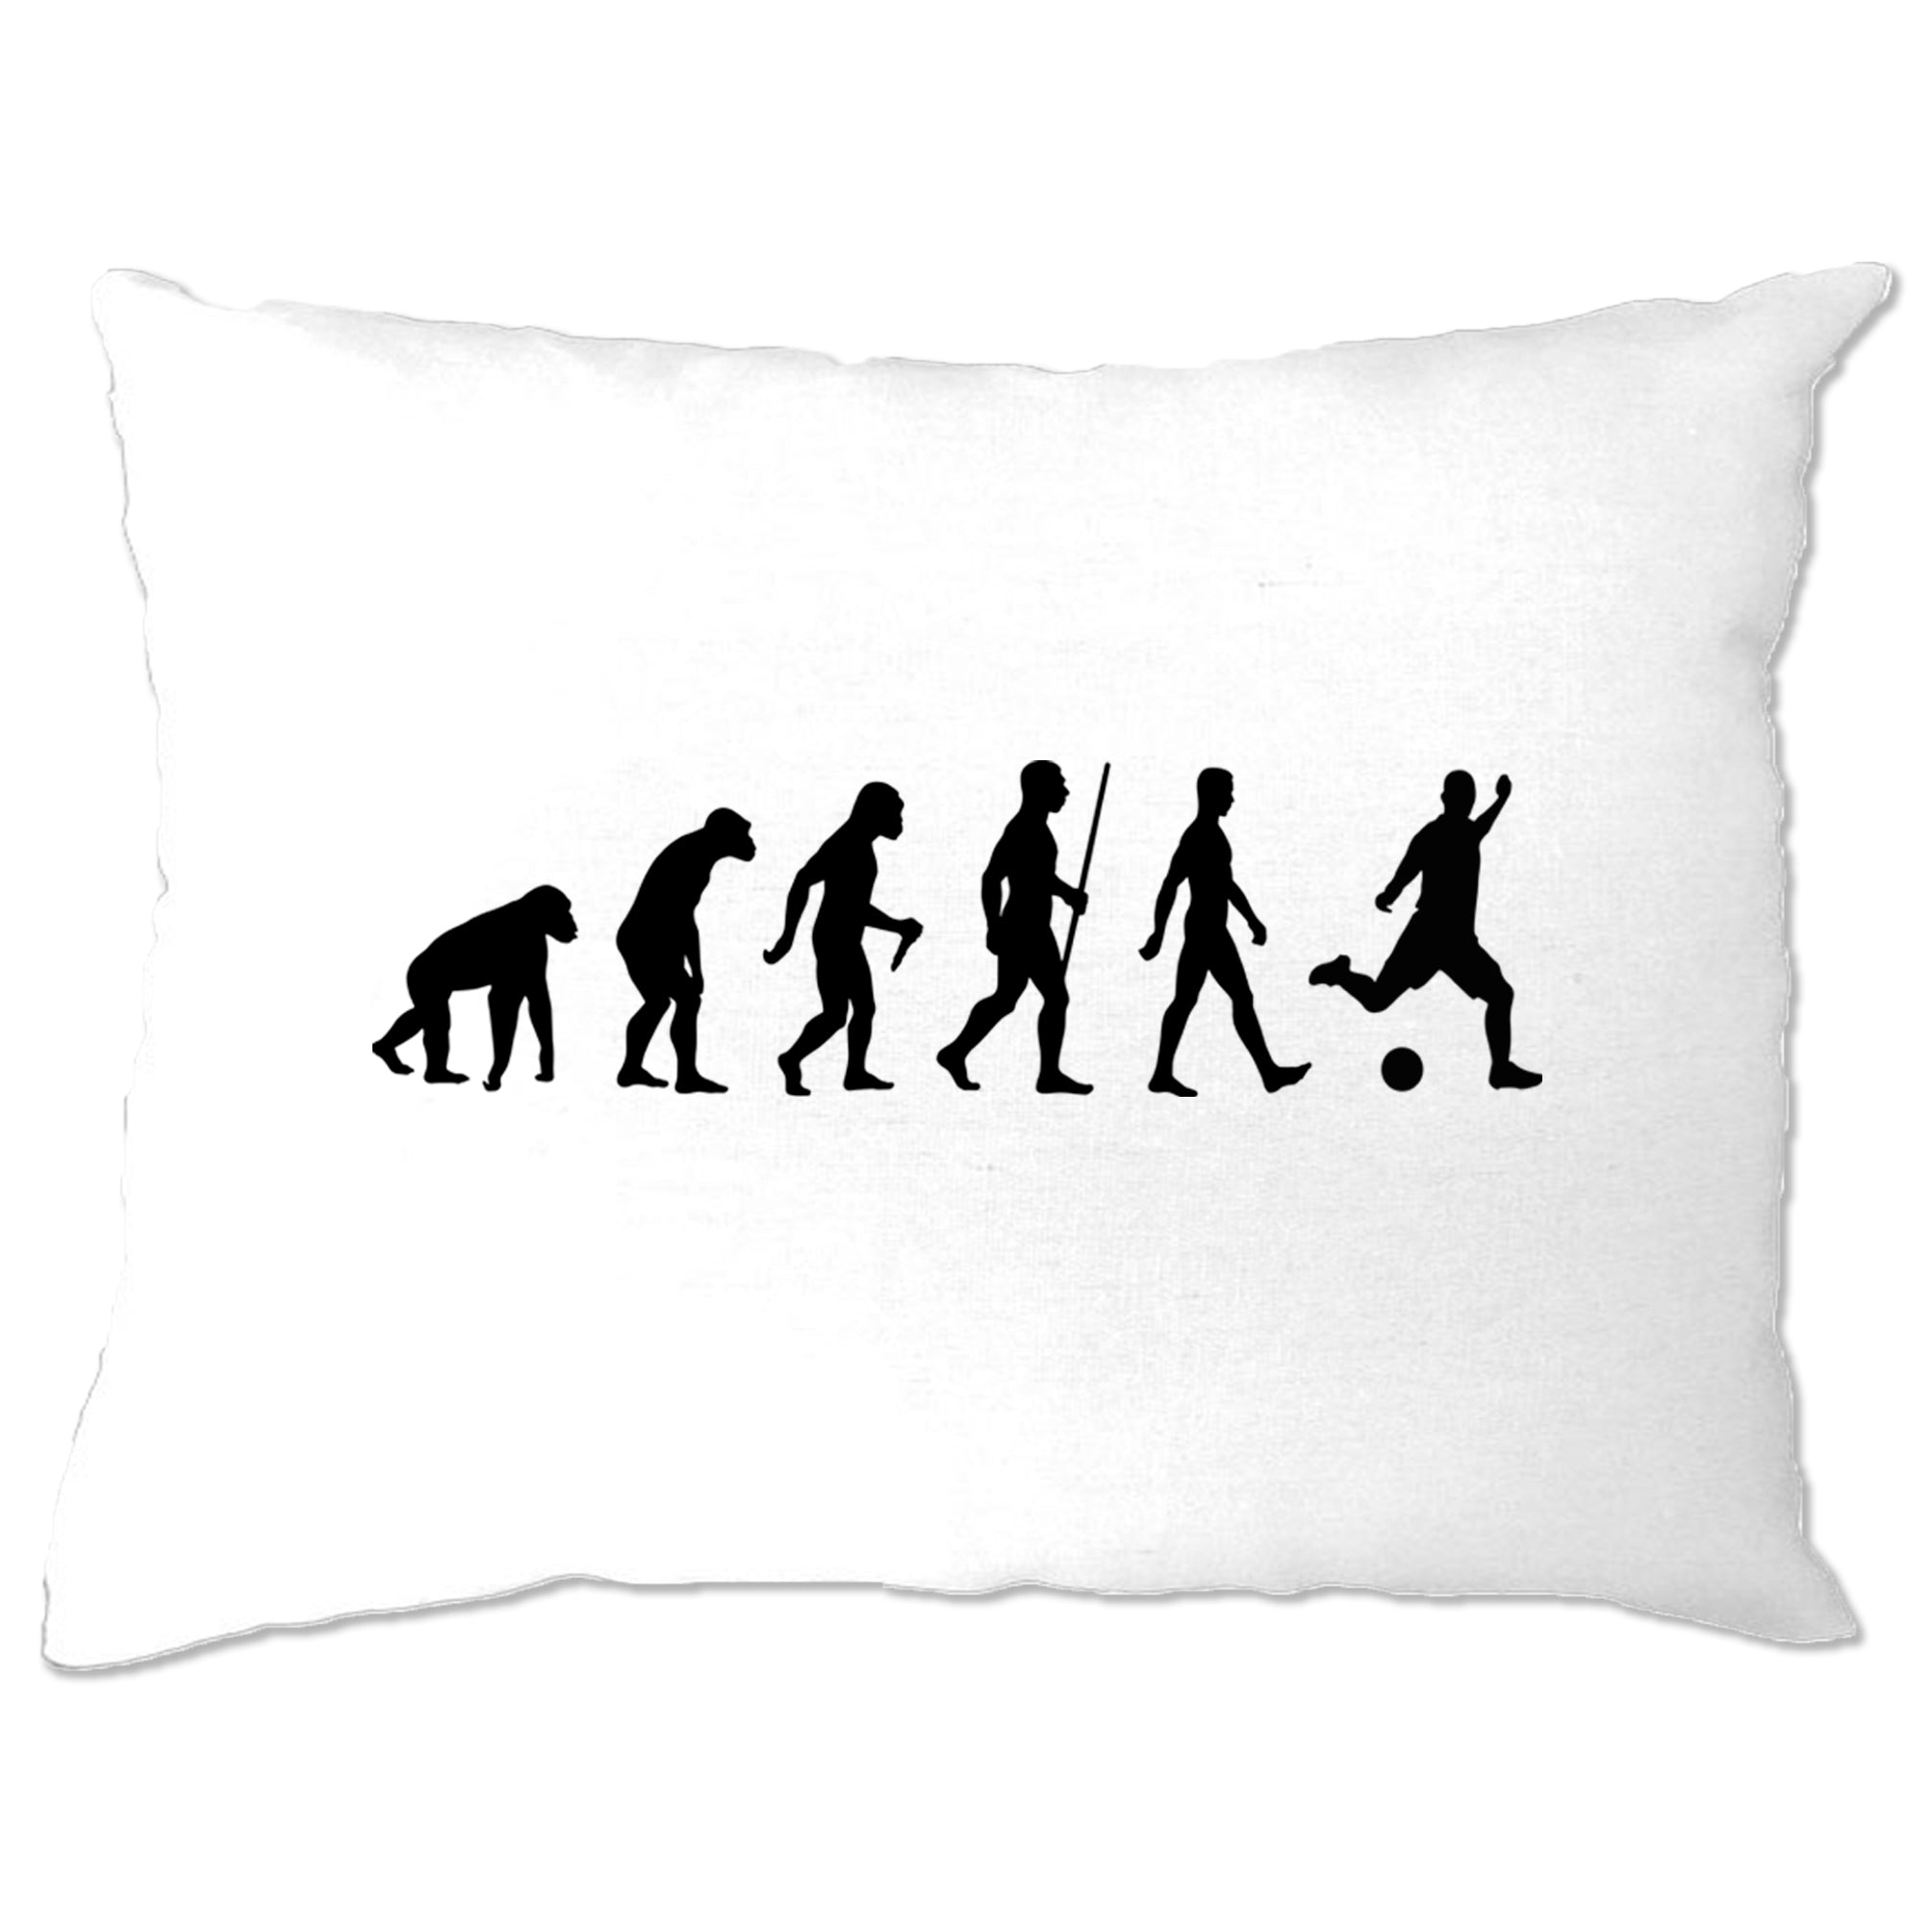 Football Fan Pillow Case The Evolution Of A Footballer